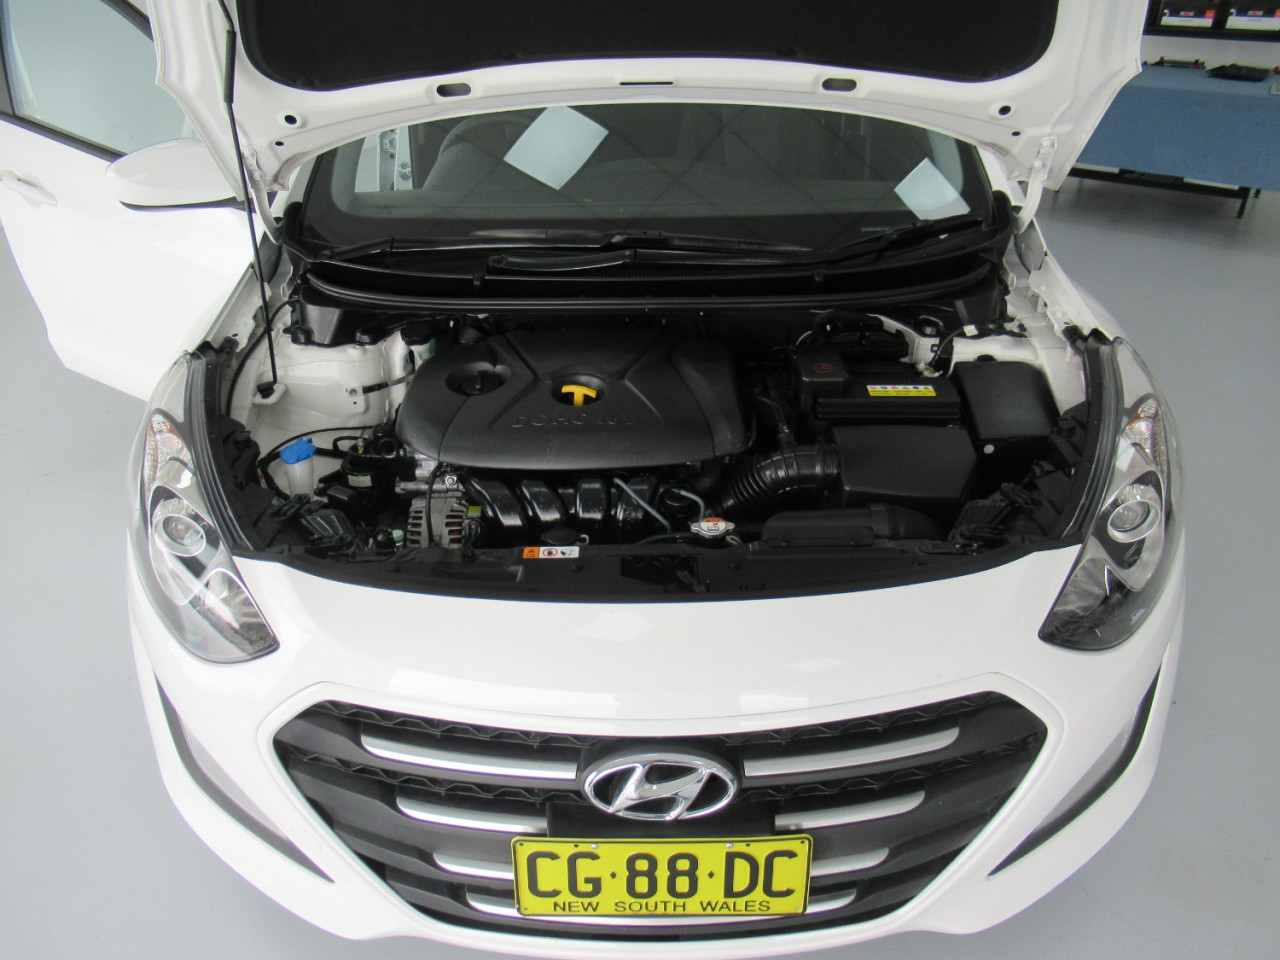 2016 Hyundai I30 GD4 SERIES II MY17 ACTIVE Hatchback Image 26